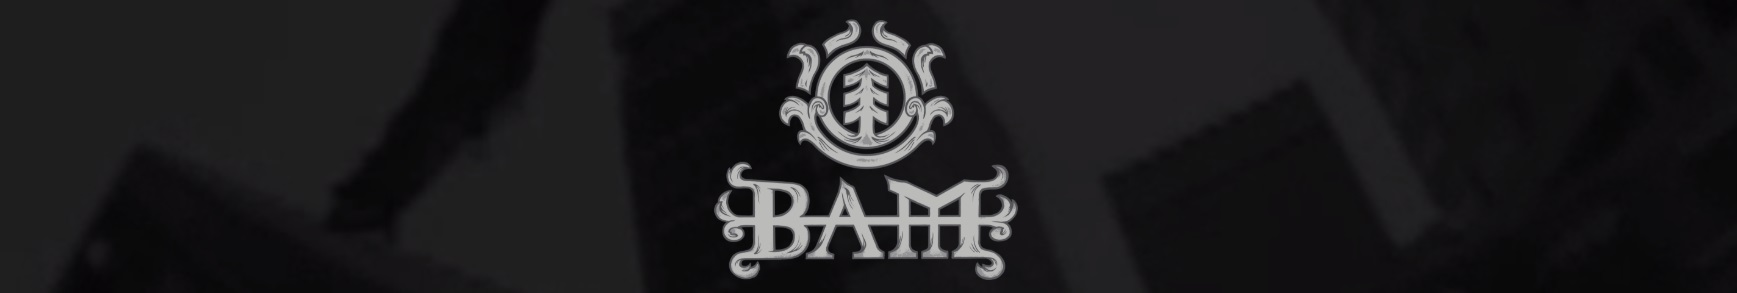 Bam Margera X Element